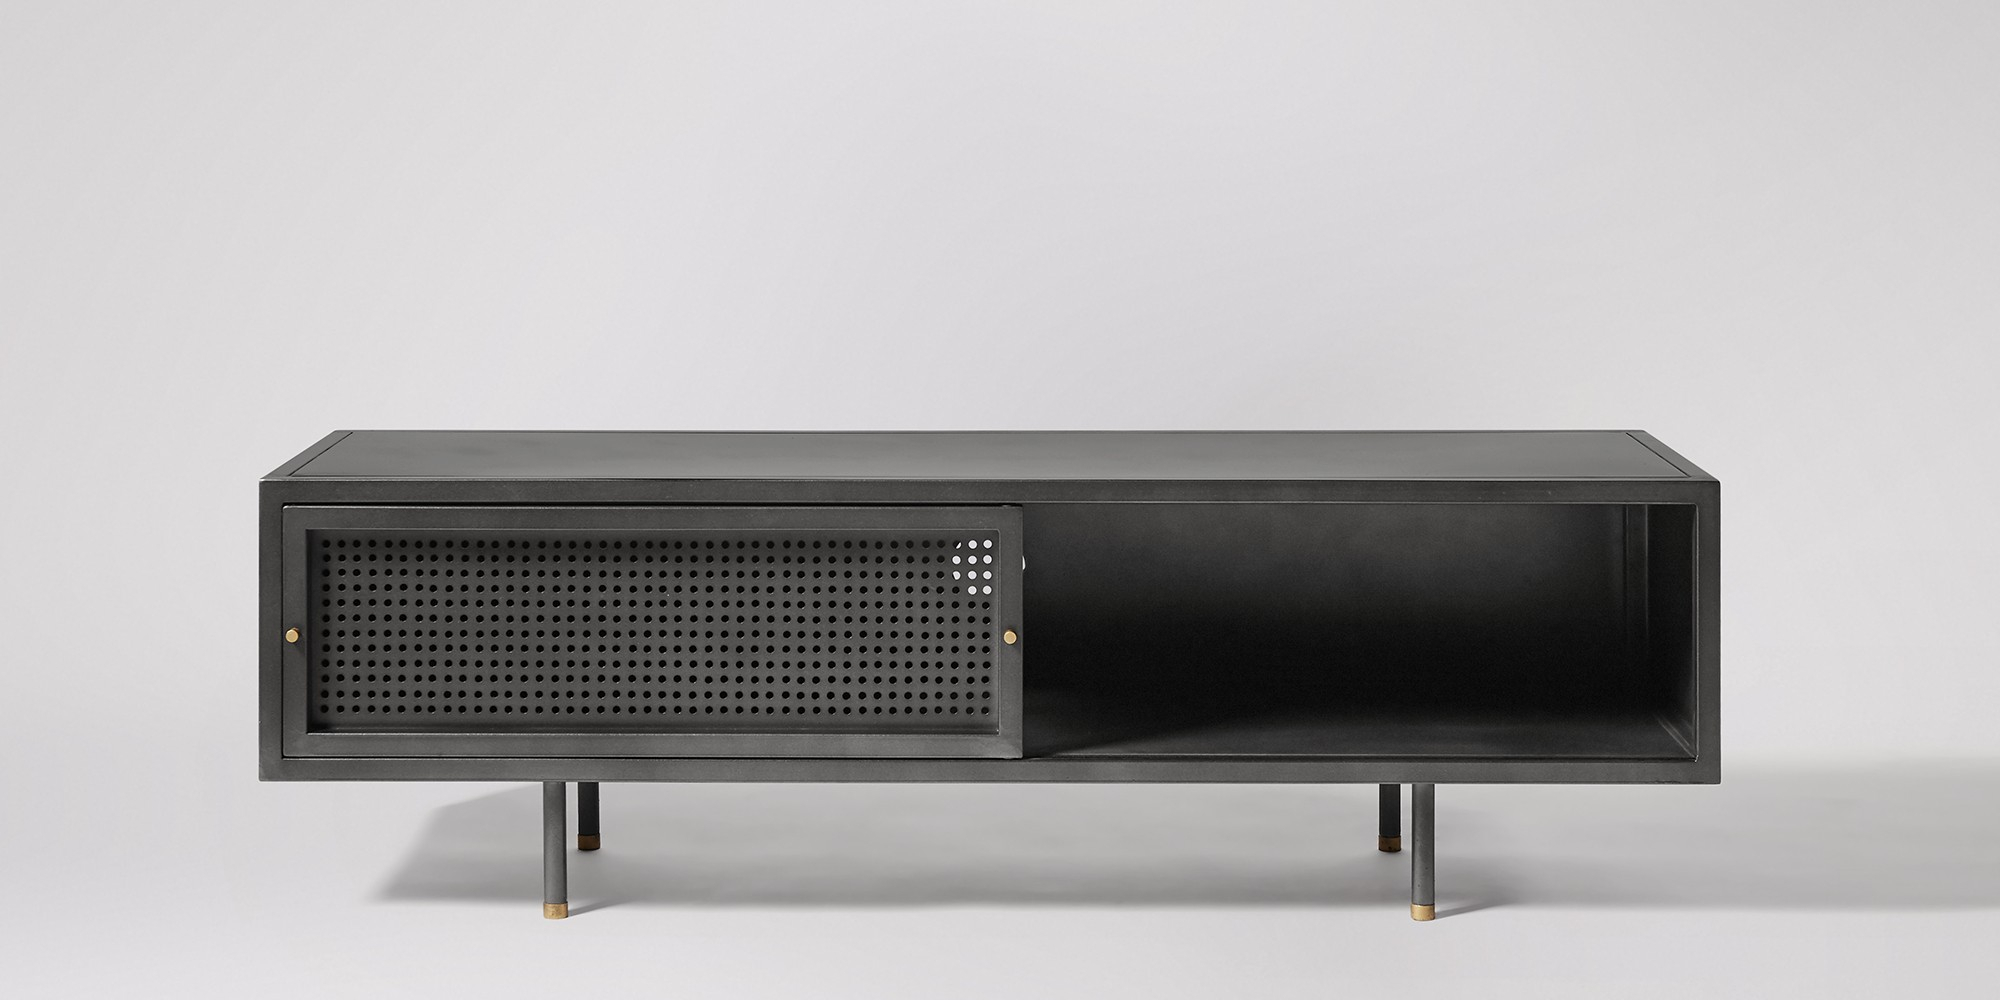 Sheffield Gunmetal & Brass Media Unit | Swoon Editions In Gunmetal Perforated Brass Media Console Tables (View 19 of 30)